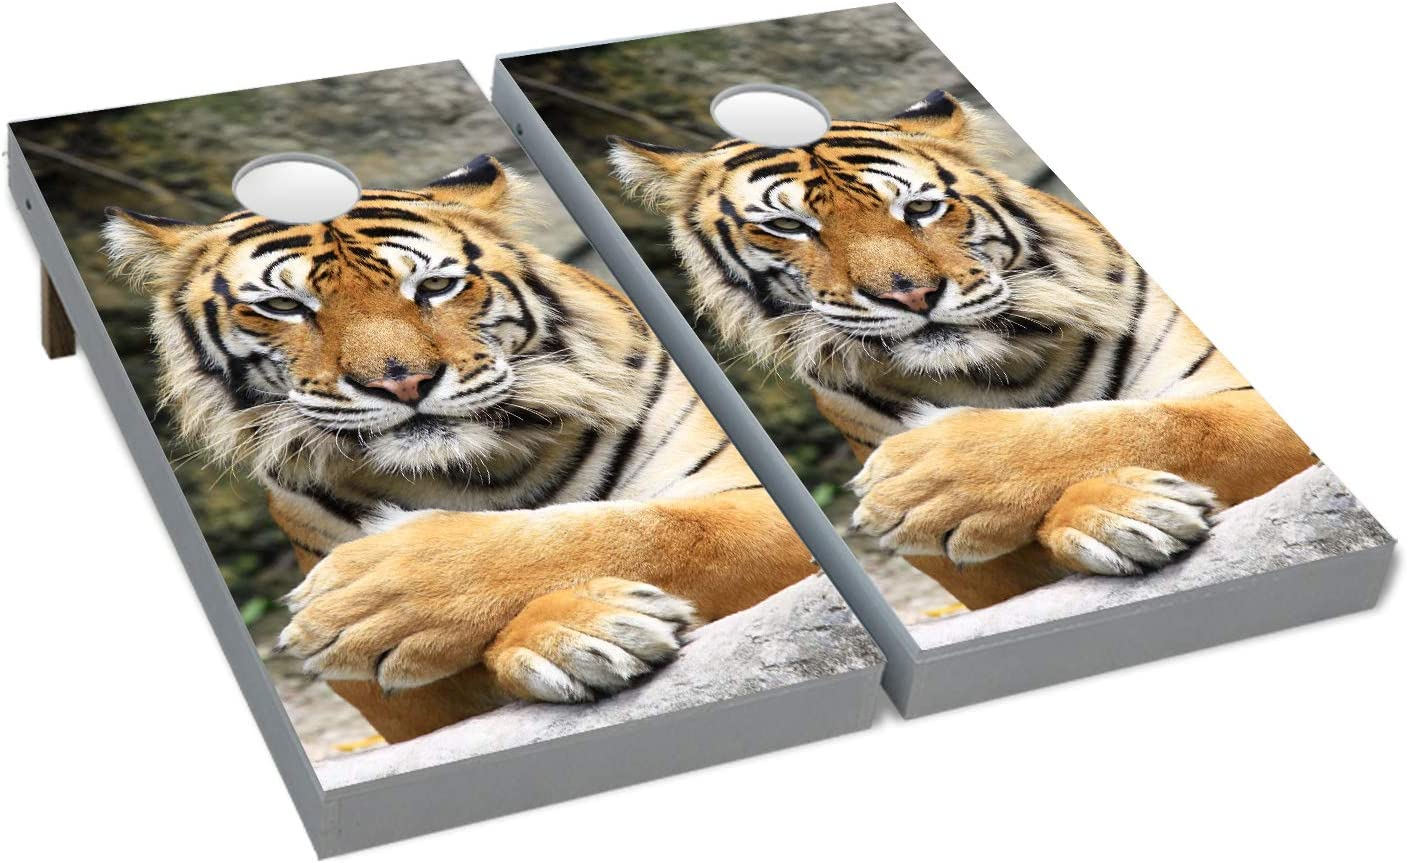 Cornhole Patient Wild Tiger Boards BEANBAG TOSS GAME w Bags Set 4